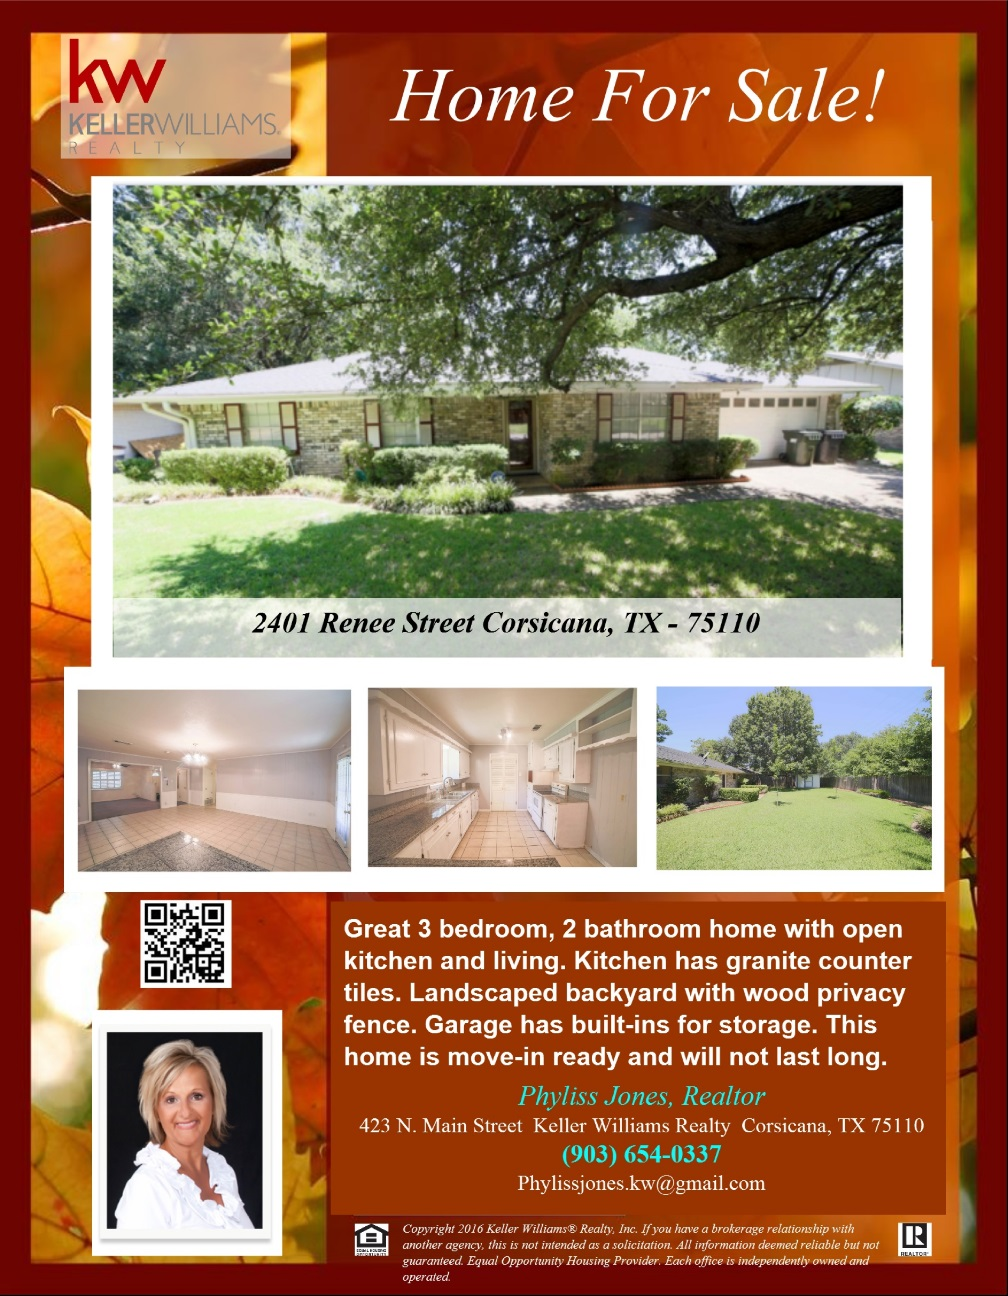 Wonderful home Available! to know more please call me Phyliss Jones (903) 654-0337.